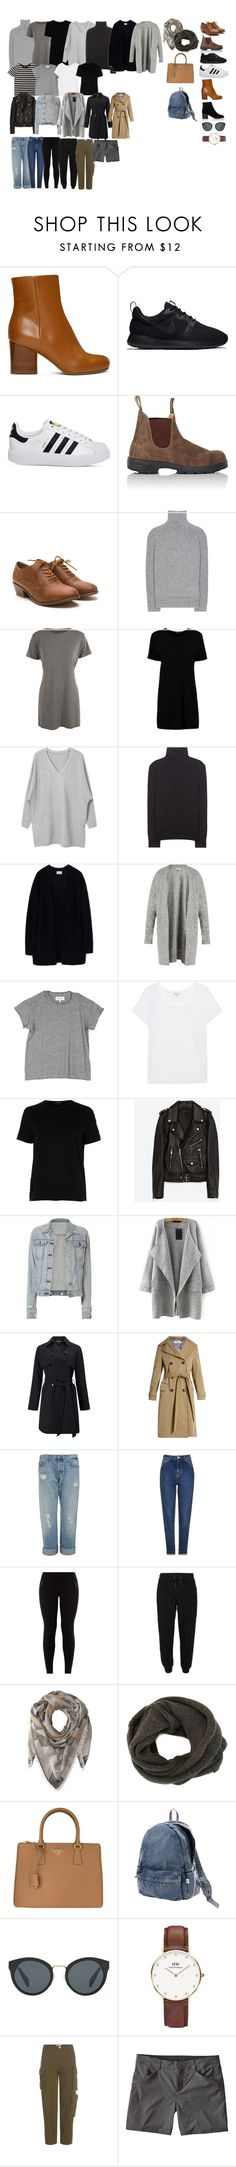 """""""RYE Deutschland"""" by equestrian2602 on Polyvore featuring Maison Margiela, NIKE, adidas, Blundstone, Haider Ackermann, WearAll, Boohoo, Polo Ralph Lauren, Acne Studios and The Great"""